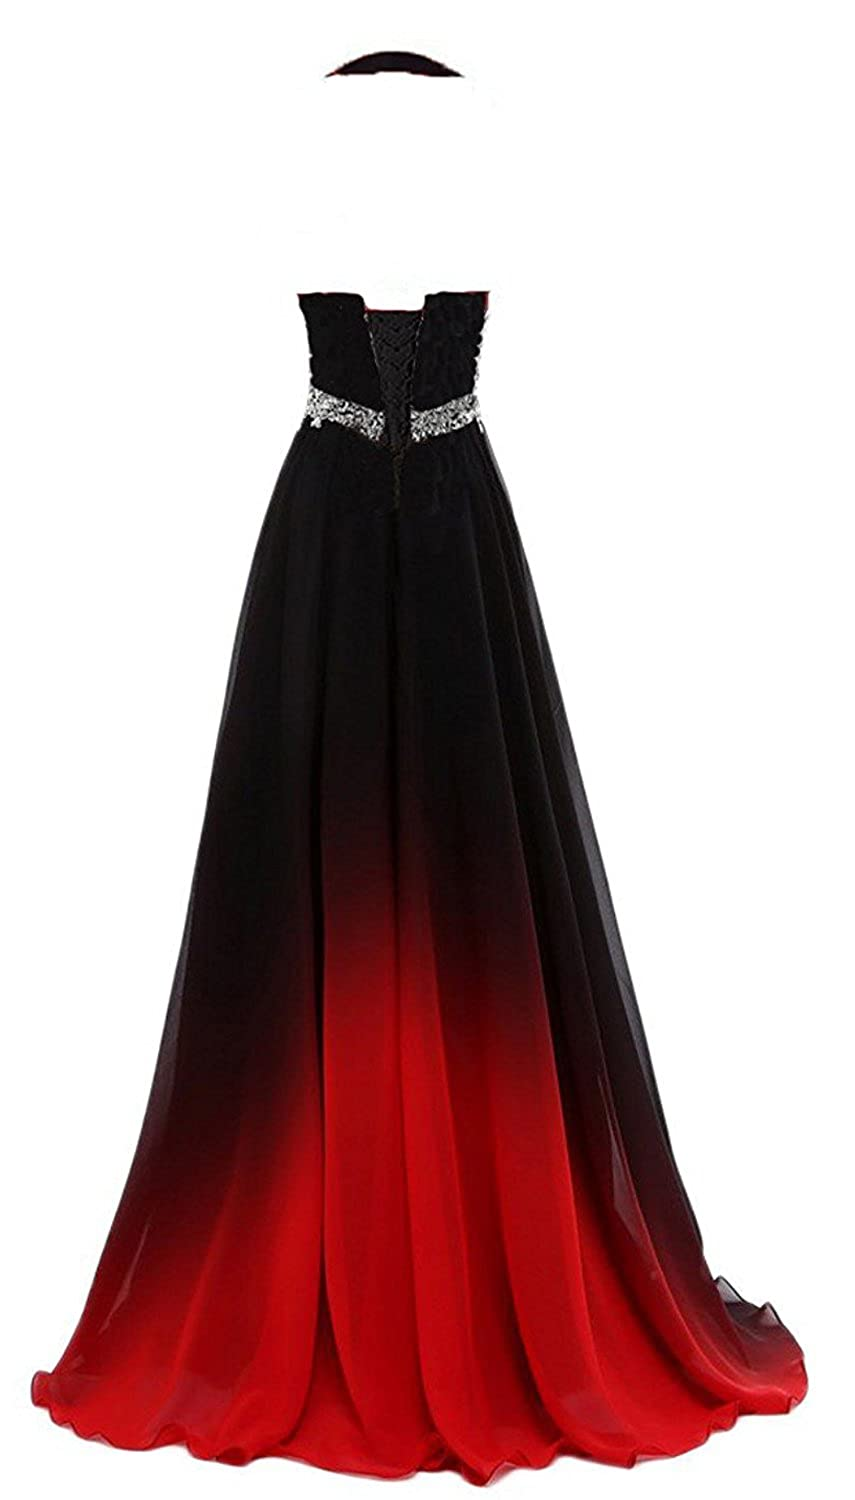 dc7434a9f4 Halter Top Prom Dress Simple - Gomes Weine AG